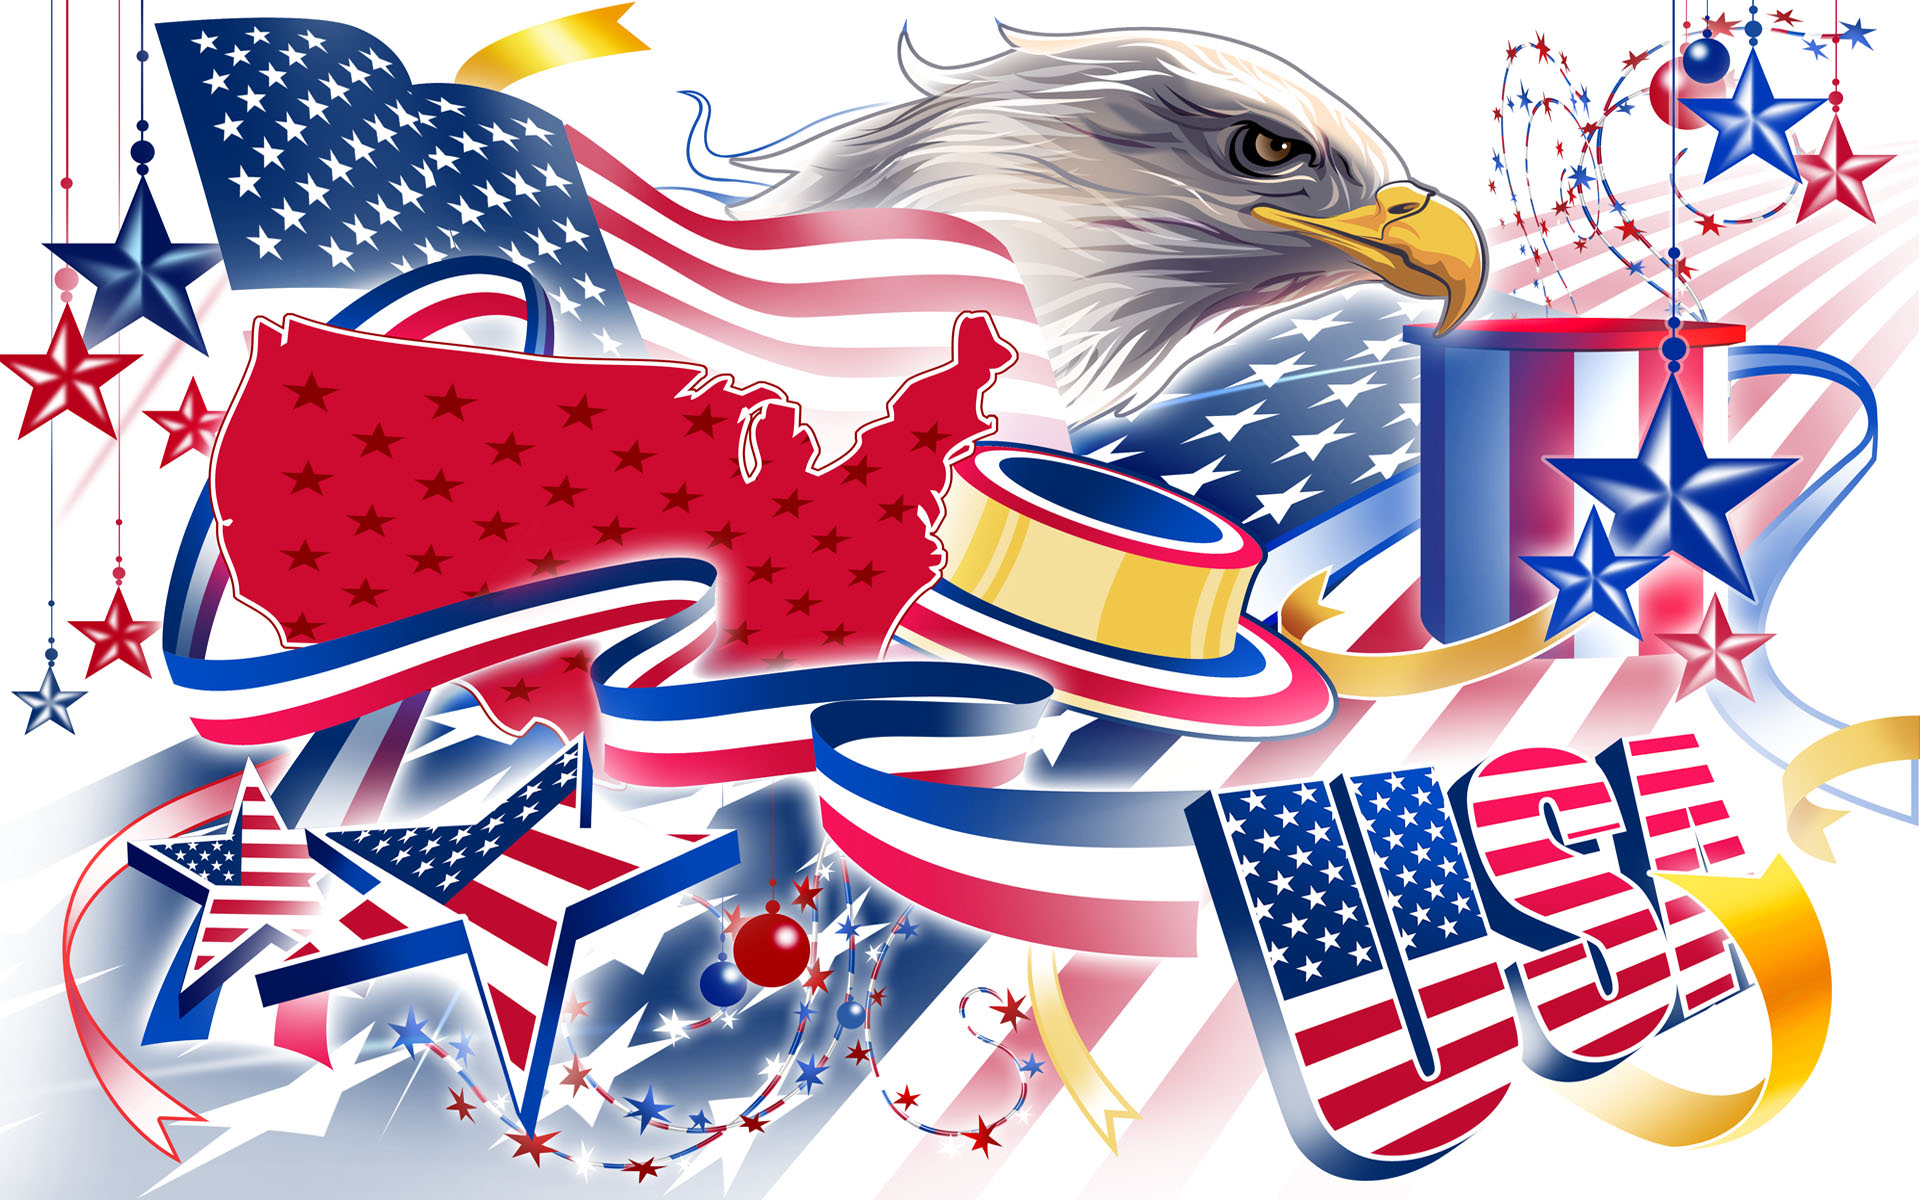 United States Of America images Independence Day wallpaper photos 1920x1200